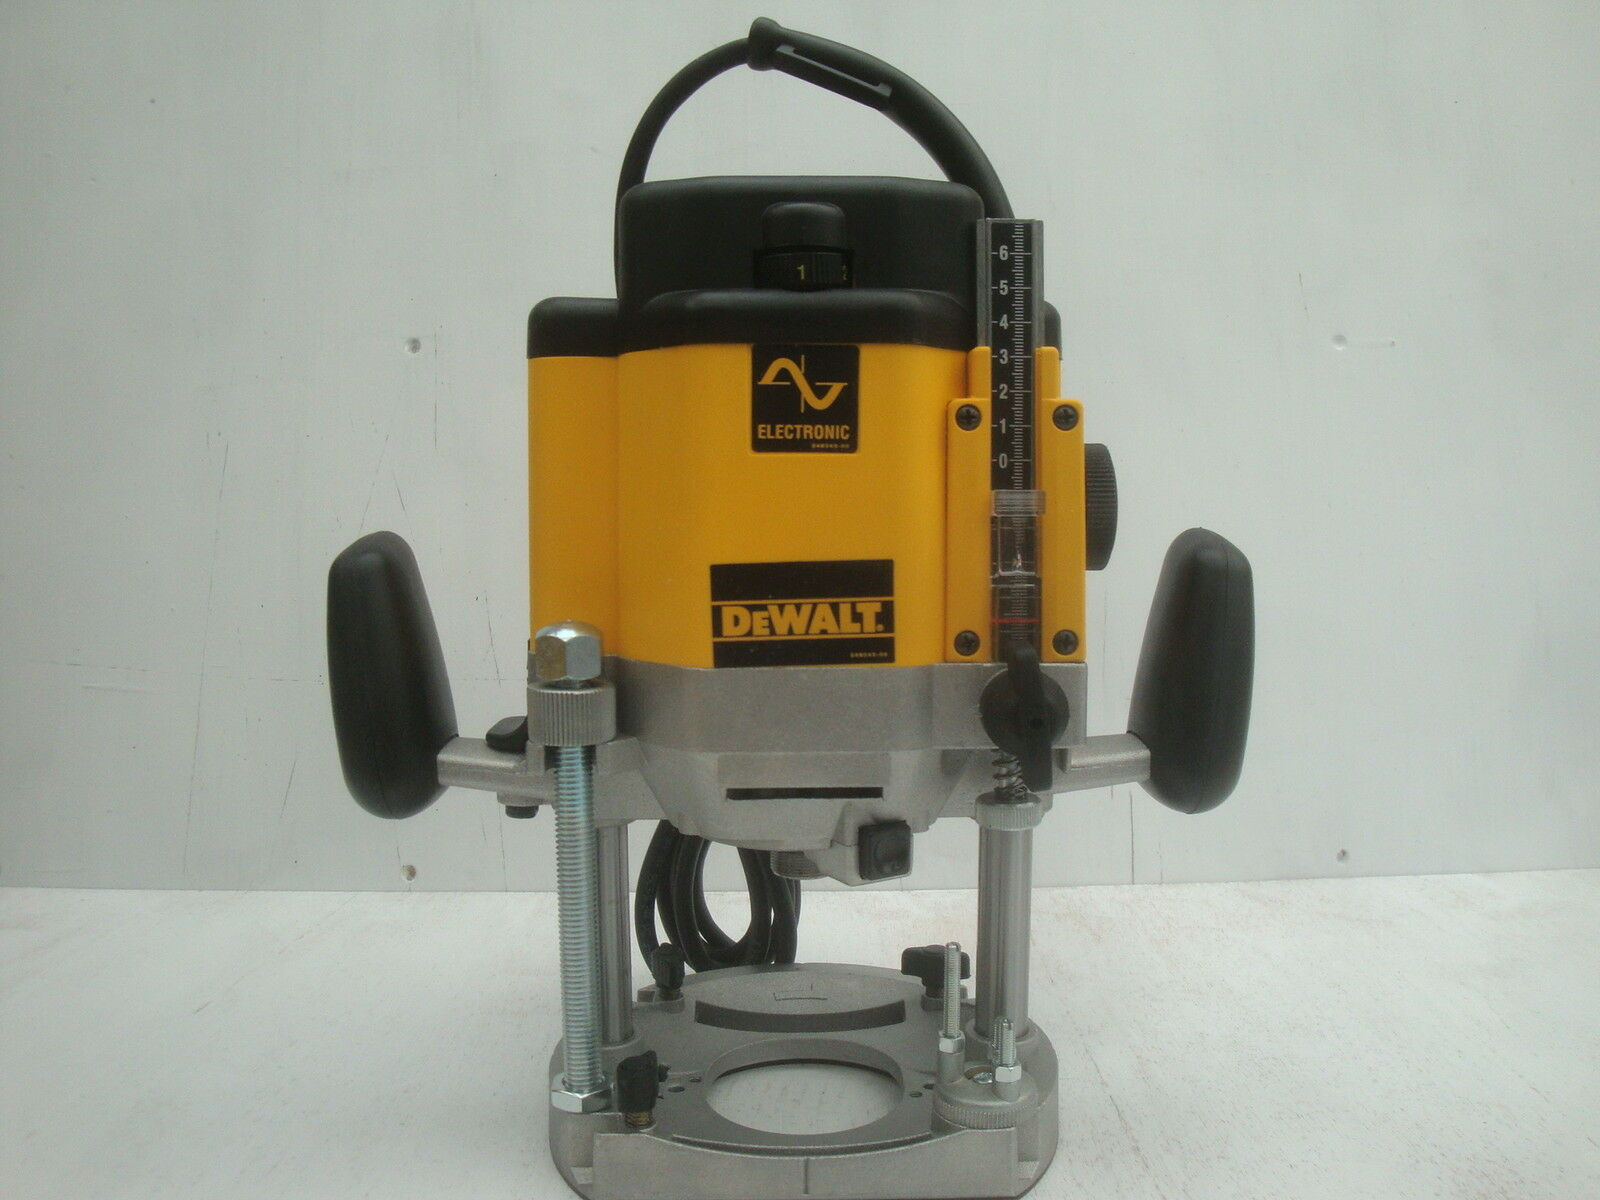 Offer brand new dewalt dw625 dw625e plunge router 240v router only 1 of 2 see more greentooth Image collections